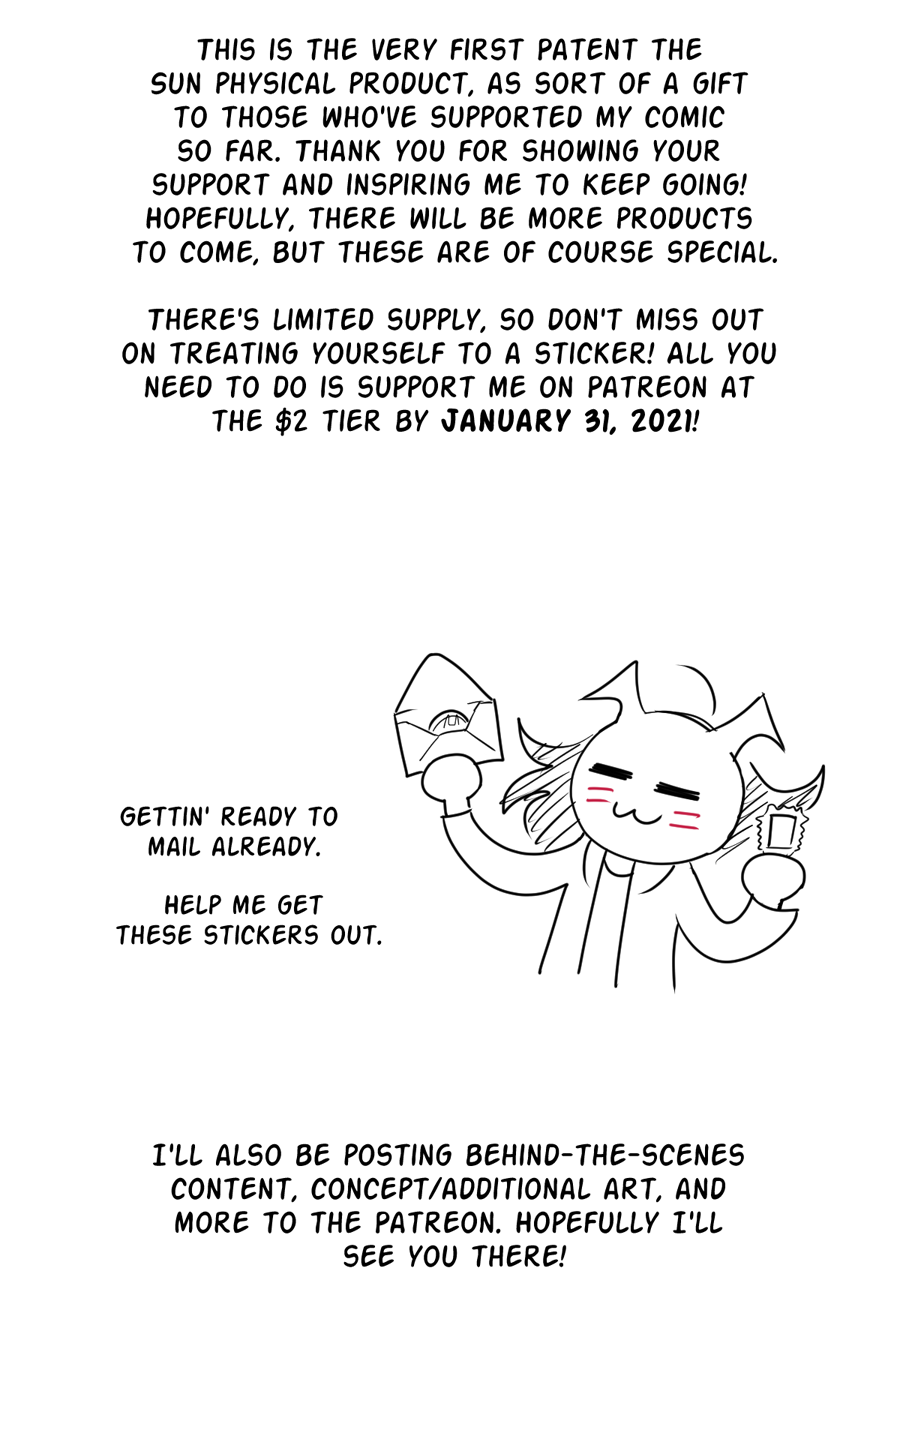 Image from episode Holidays 2020 Bonus Comic